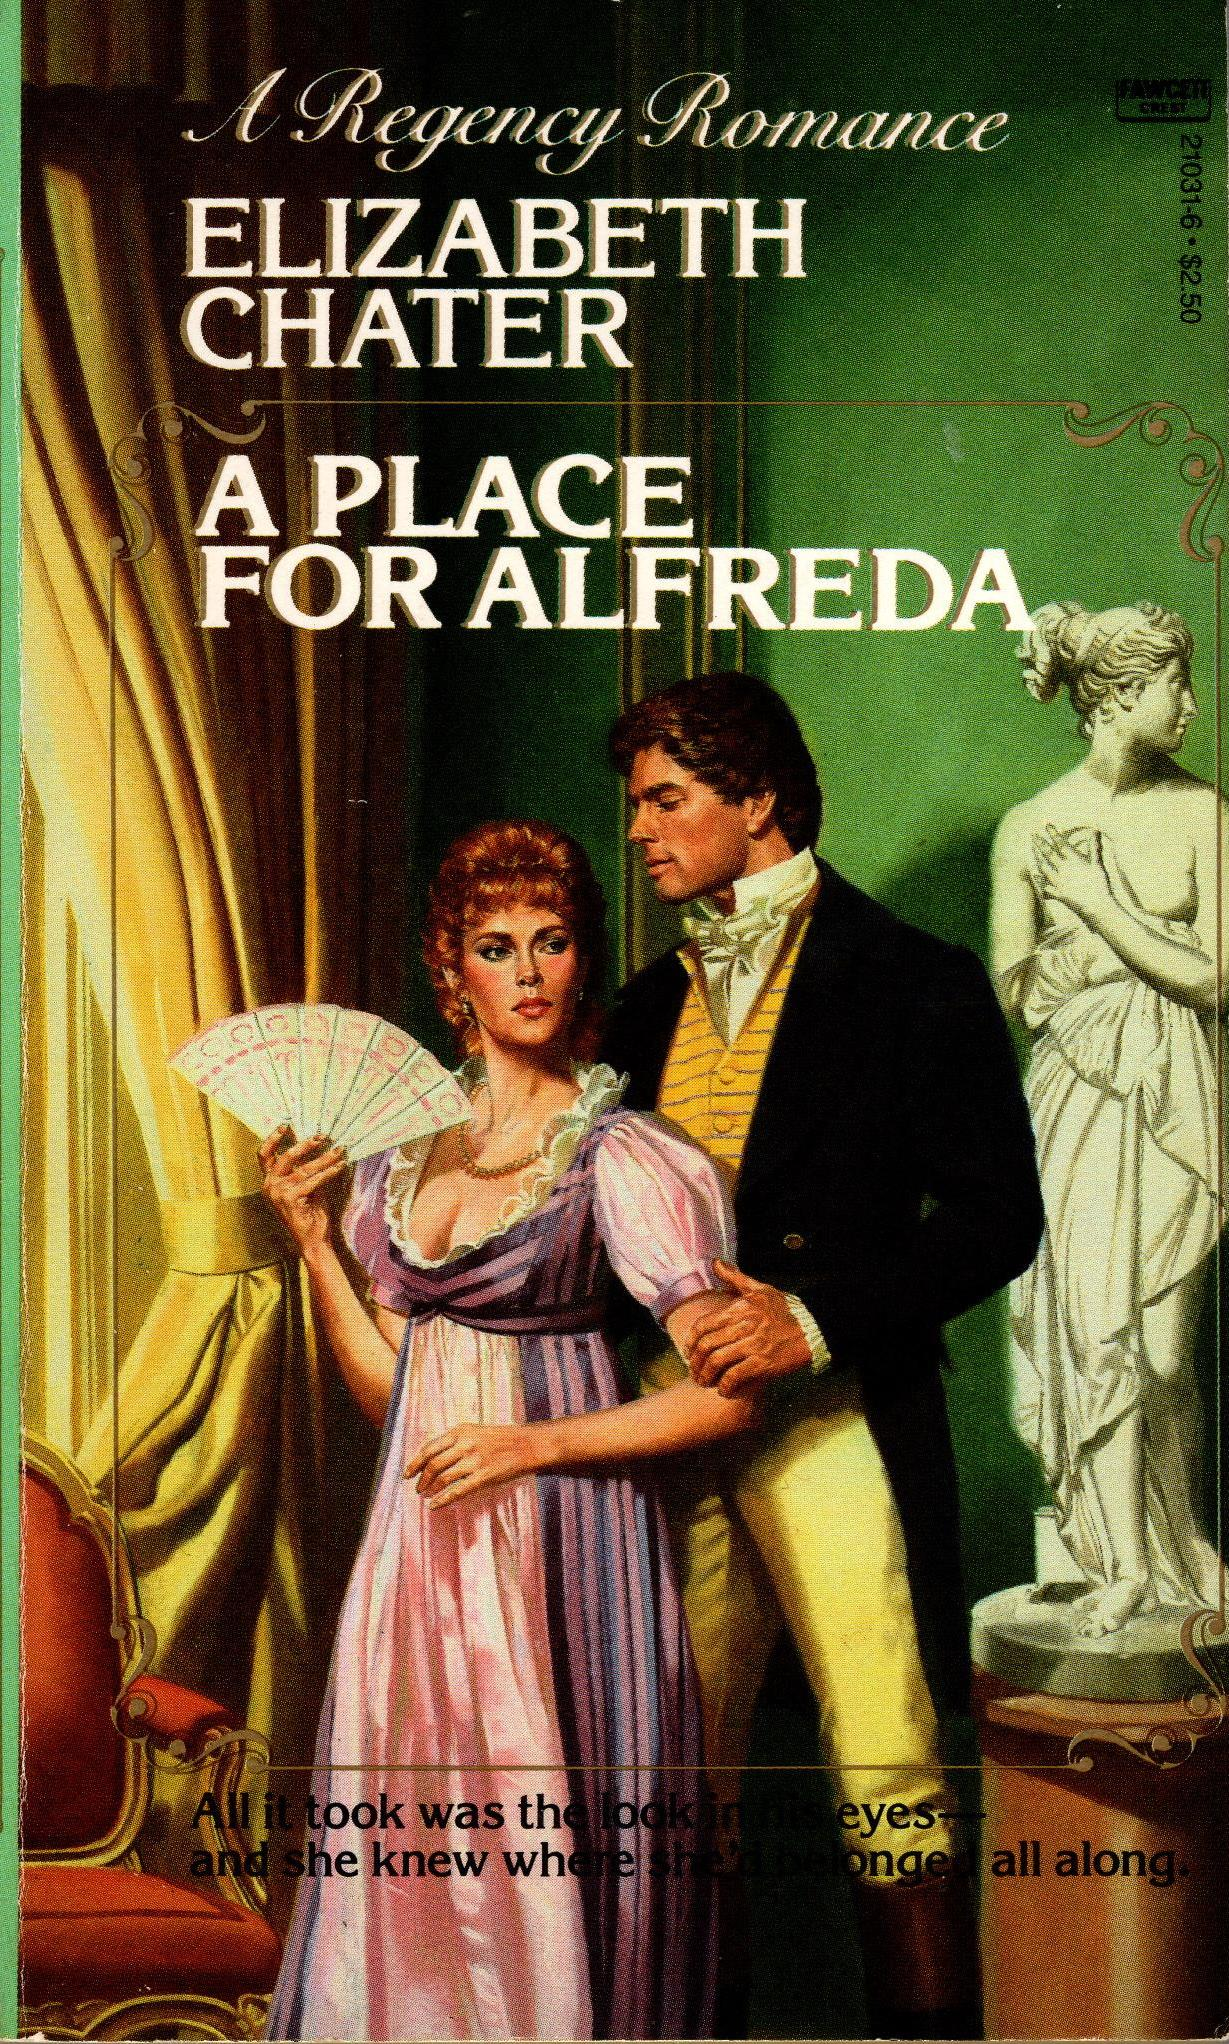 Image for PLACE FOR ALFREDA, A